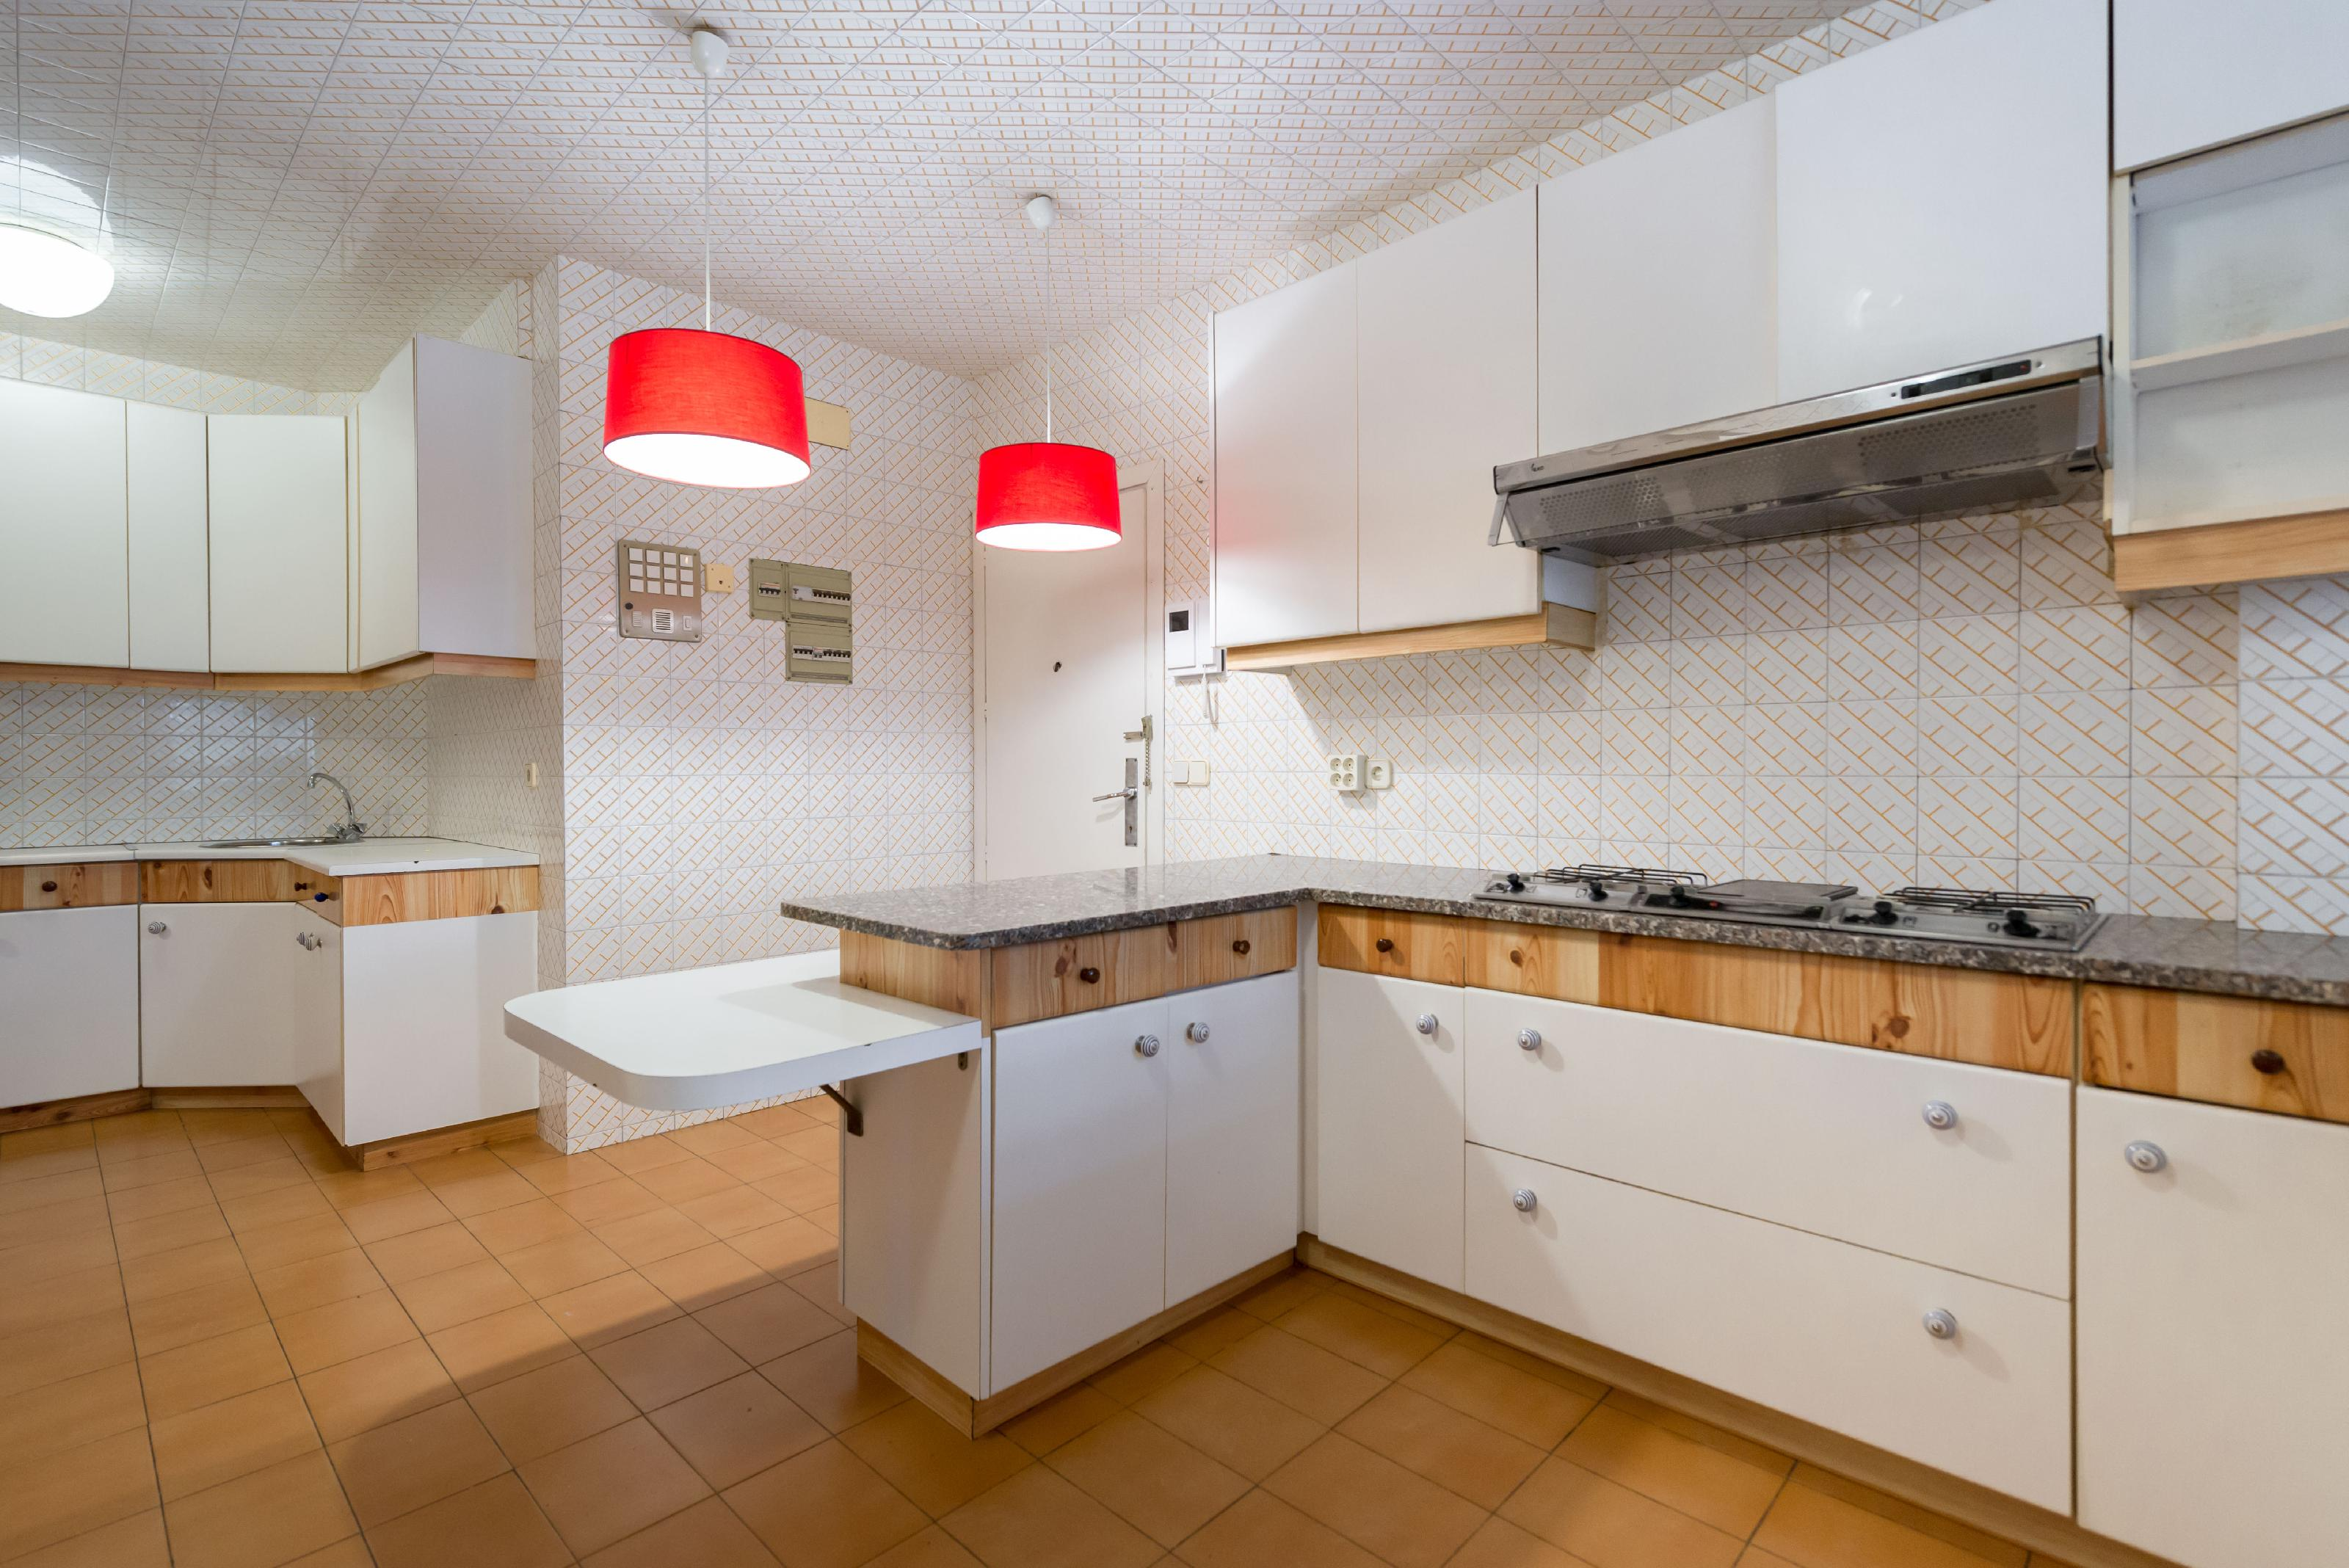 245495 Penthouse for sale in Les Corts, Pedralbes 9